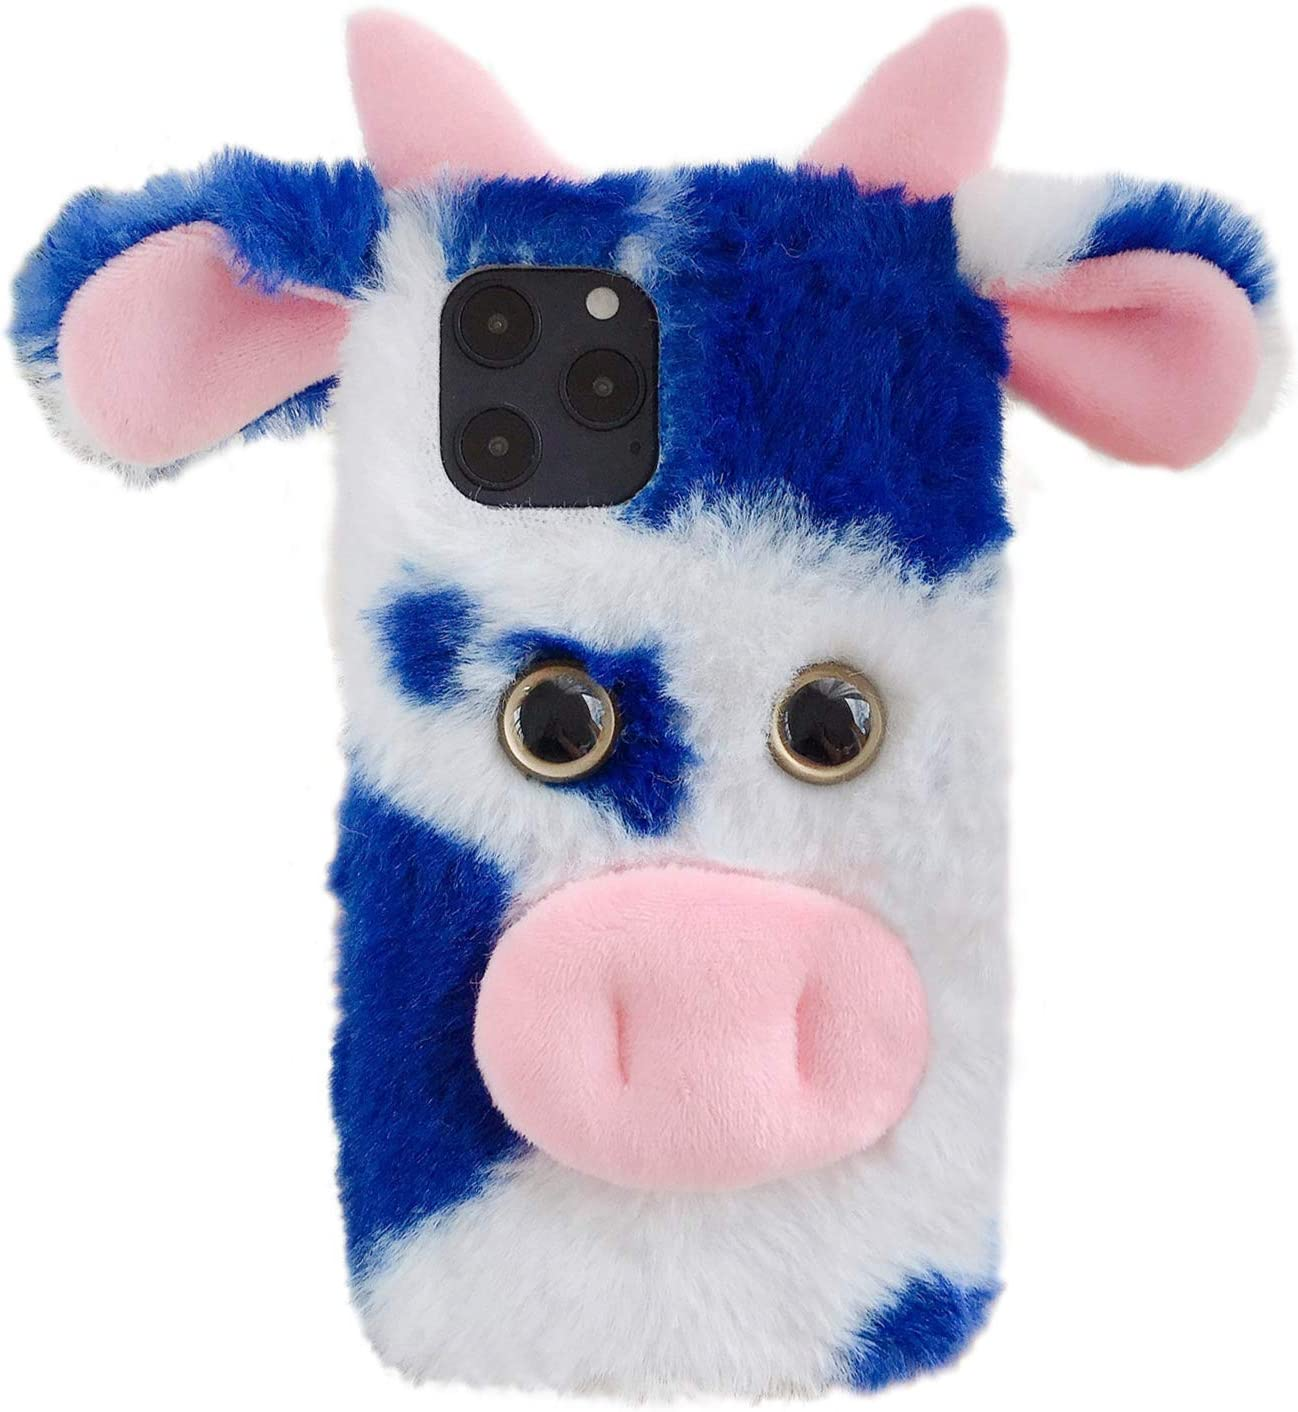 Red, 12 Pro Max HikerClub Compatible with iPhone 12 Pro Max Plush Case Cute Dairy Cow Soft Fluffy Fur Handmade Winter Warm Case for Girls Women